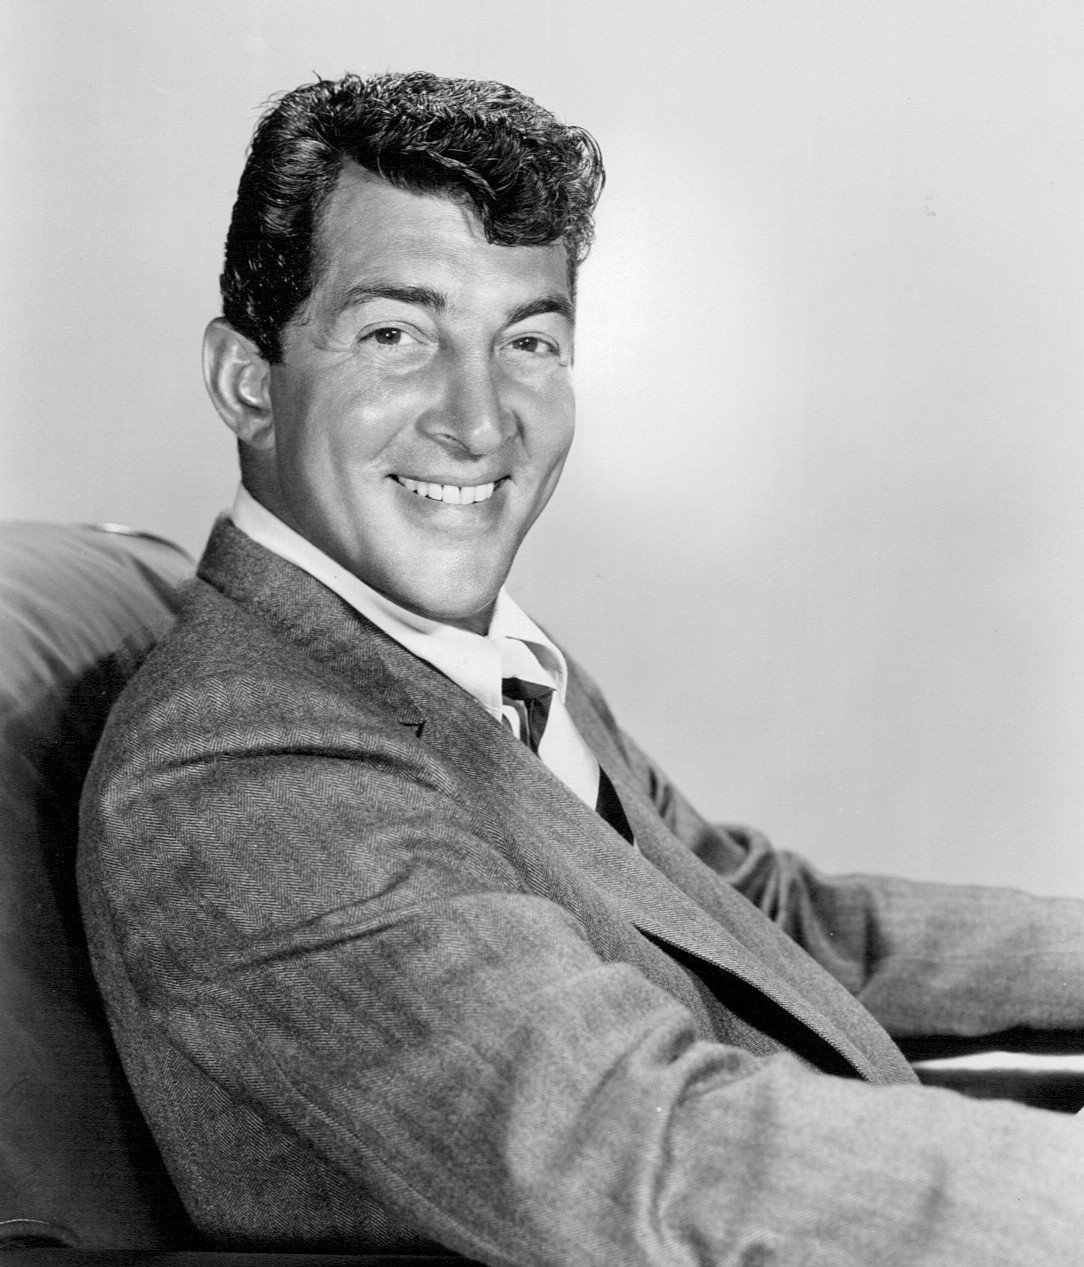 Photo of Dean Martin from 1959. Photo: Wikimedia Commons